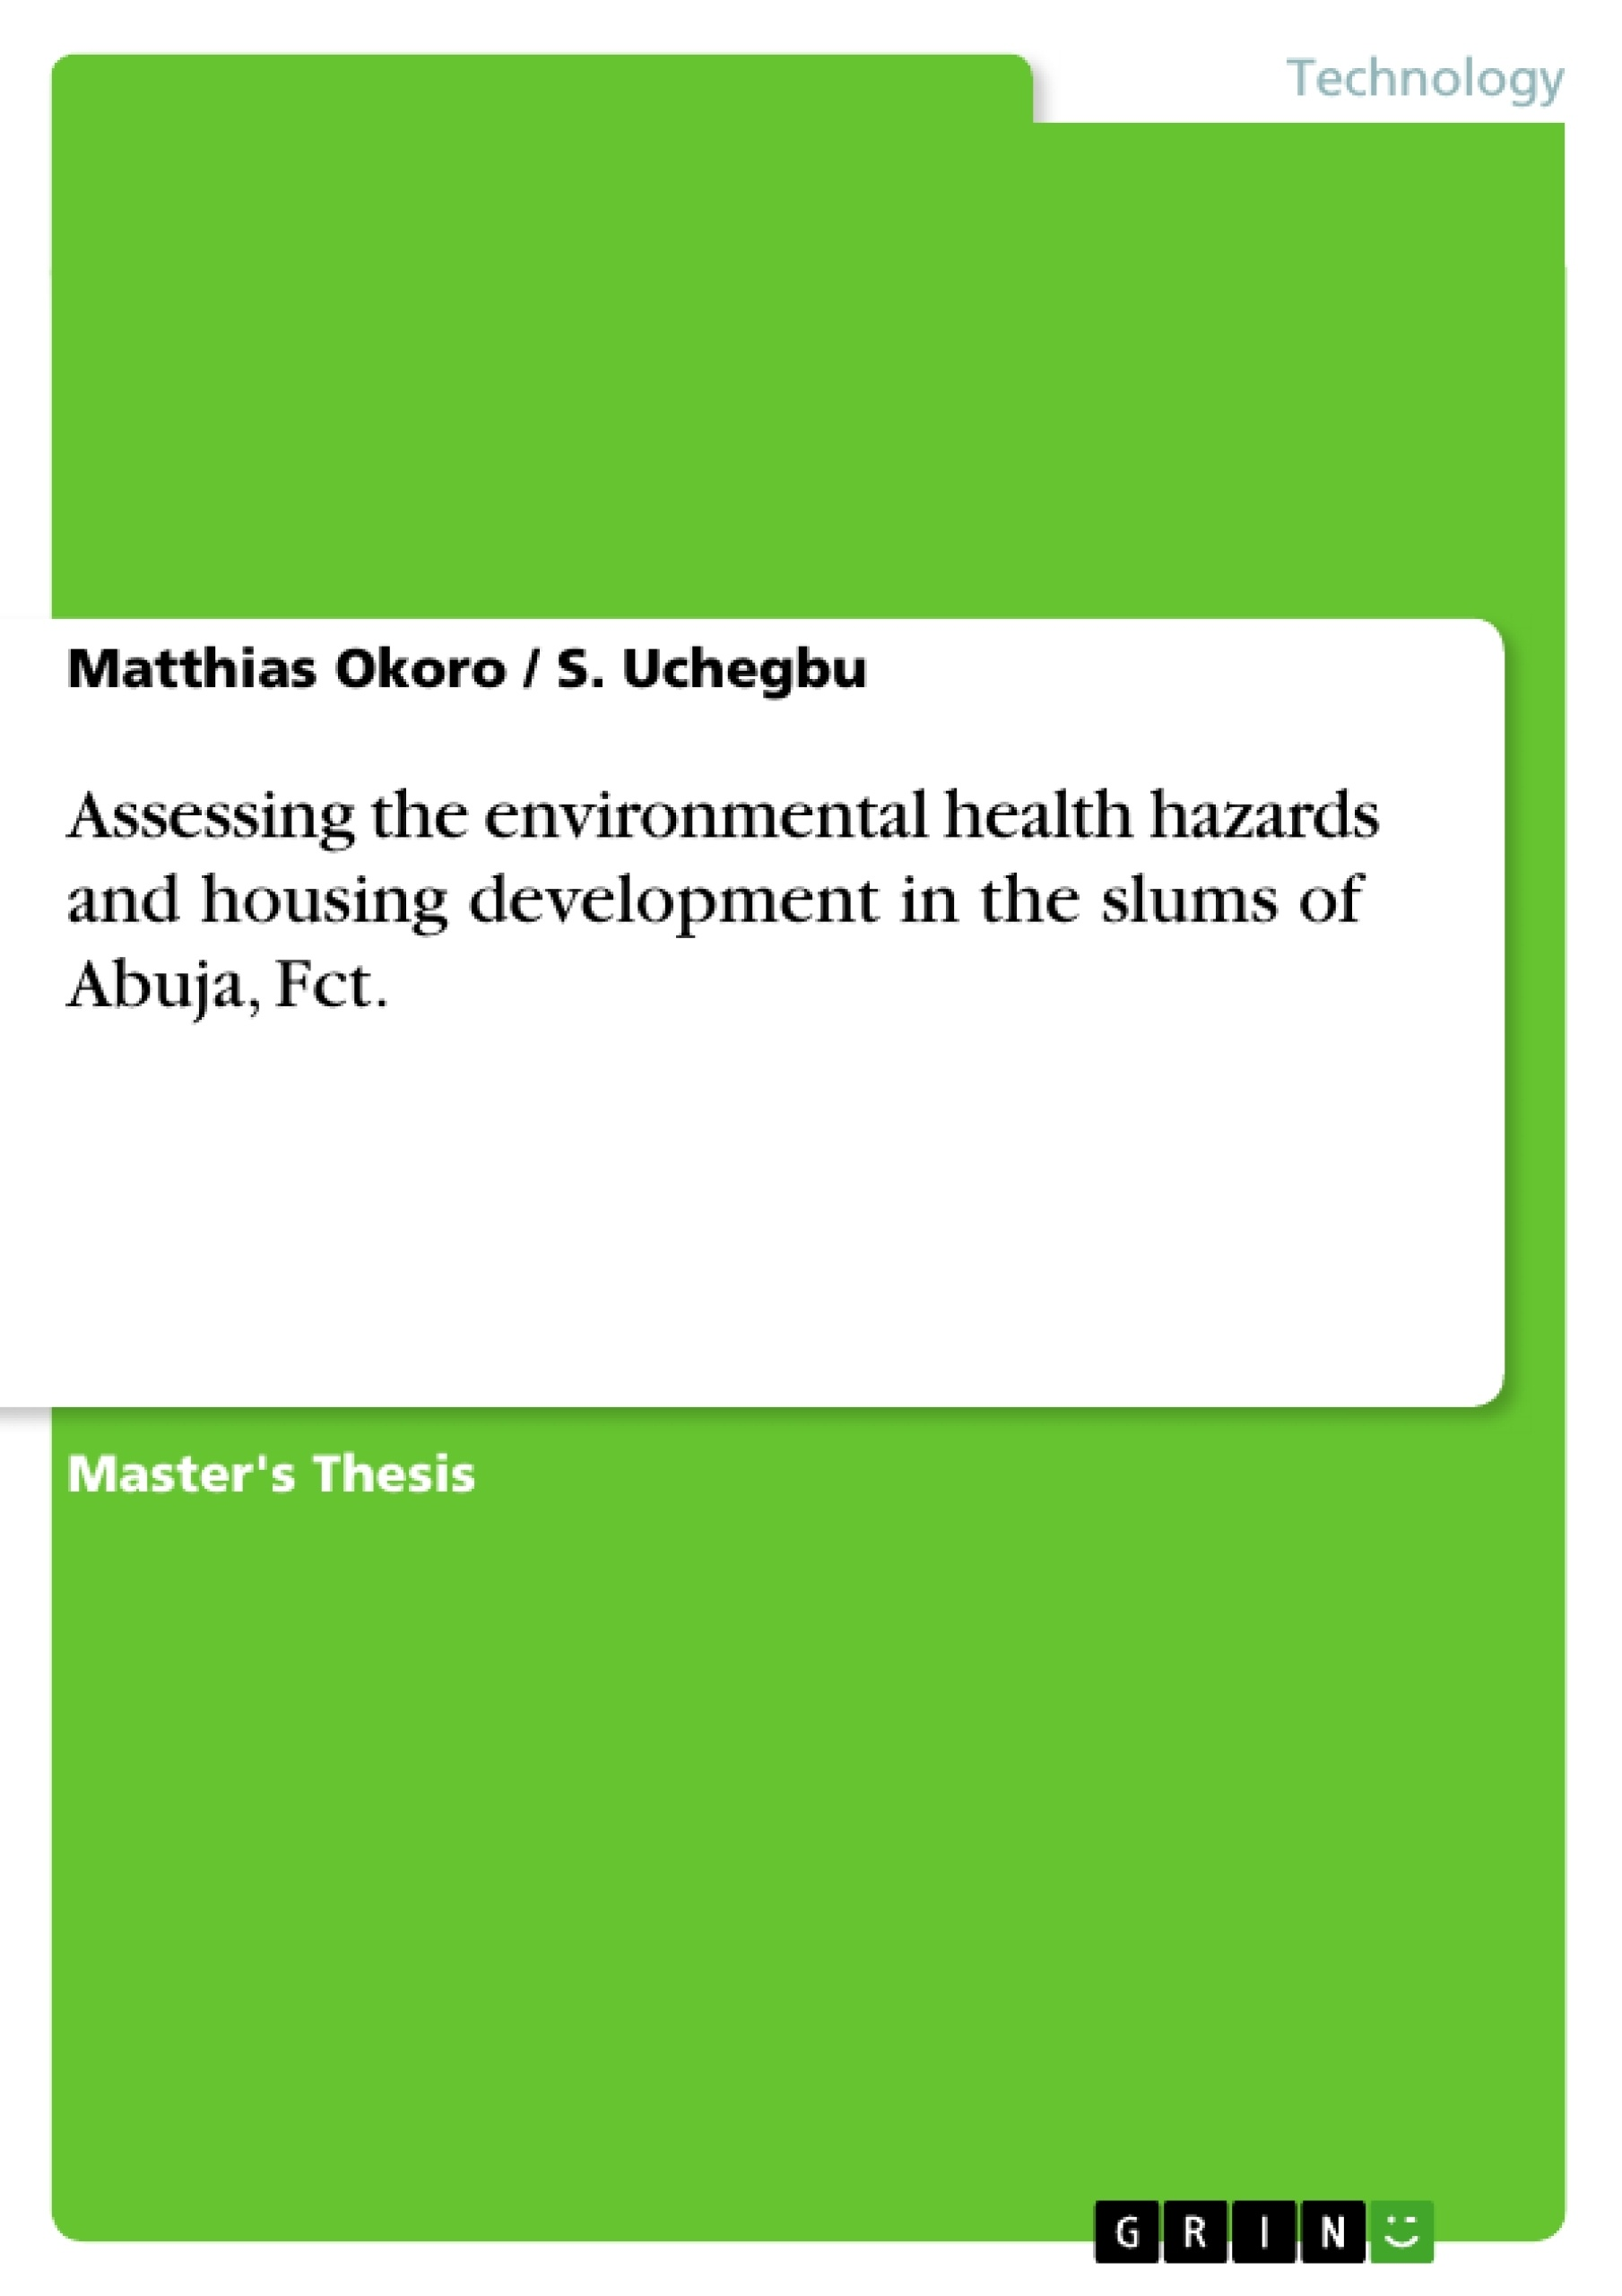 Title: Assessing the environmental health hazards and housing development in the slums of Abuja, Fct.